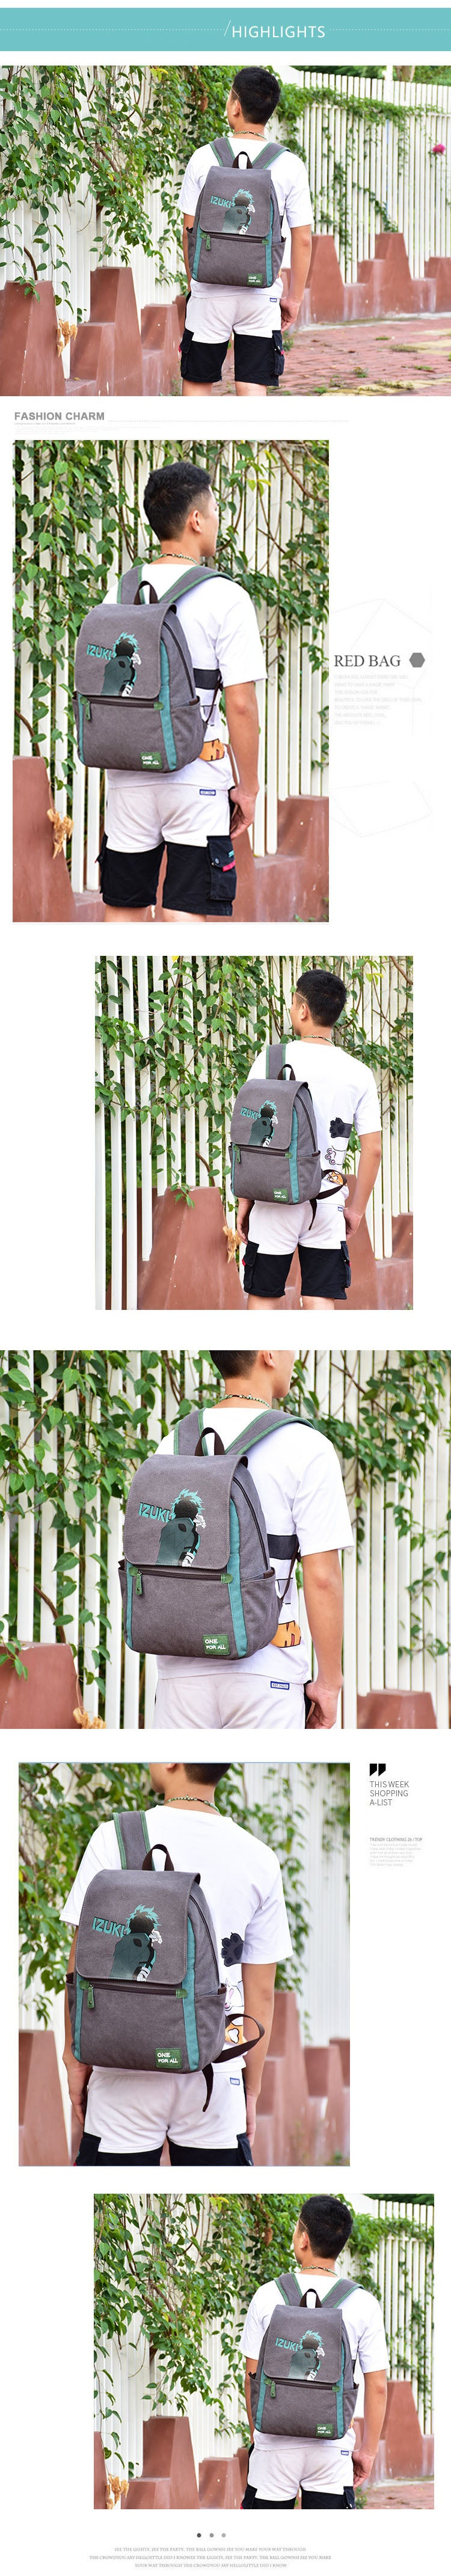 My Hero Academia Backpack Midoriya Izuku One For All Fans Bag